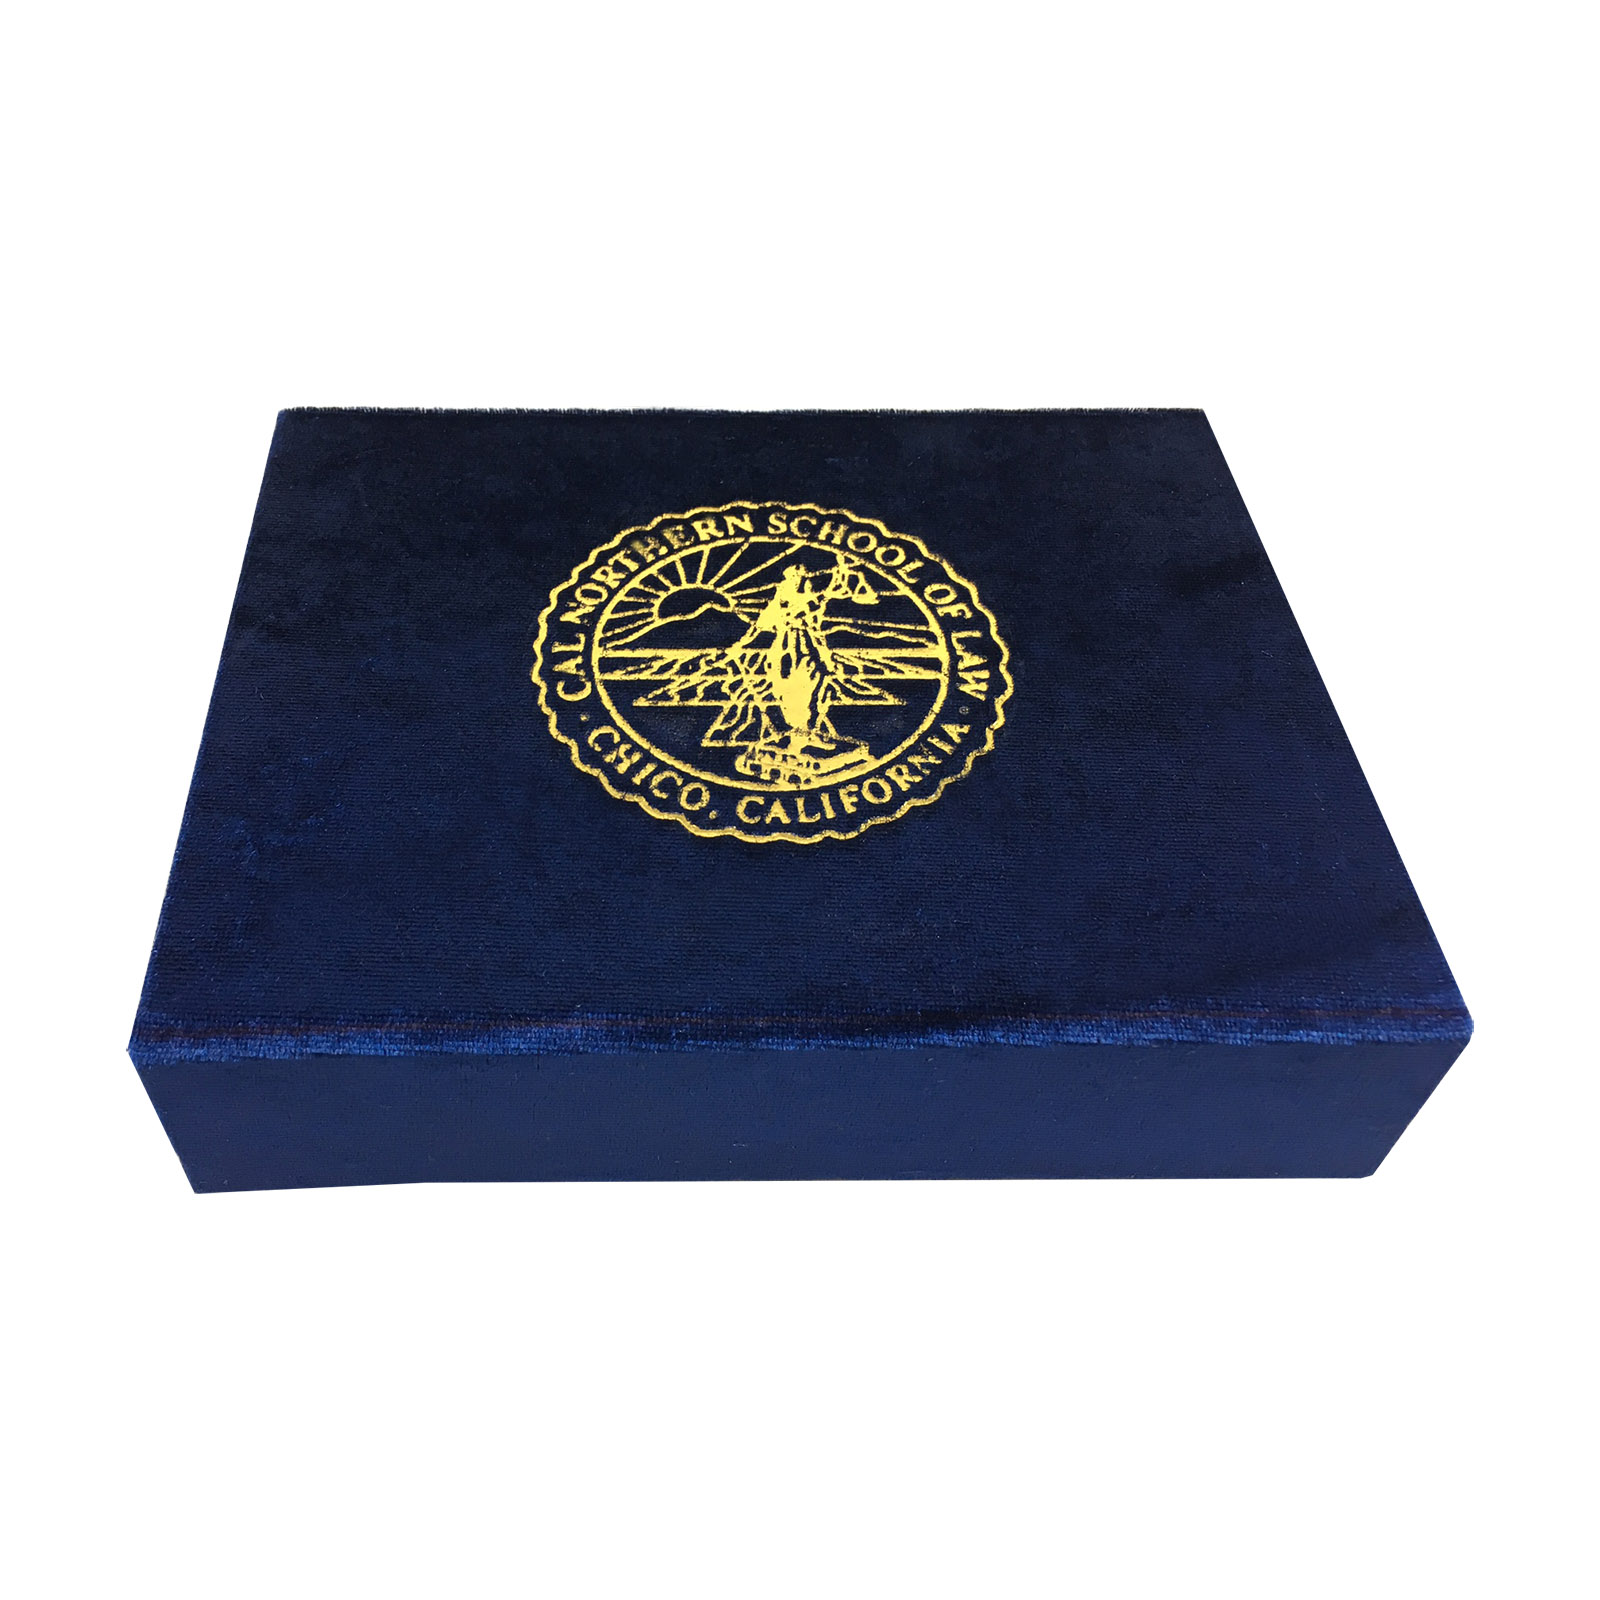 Magnetic velvet logo stamped packaging box